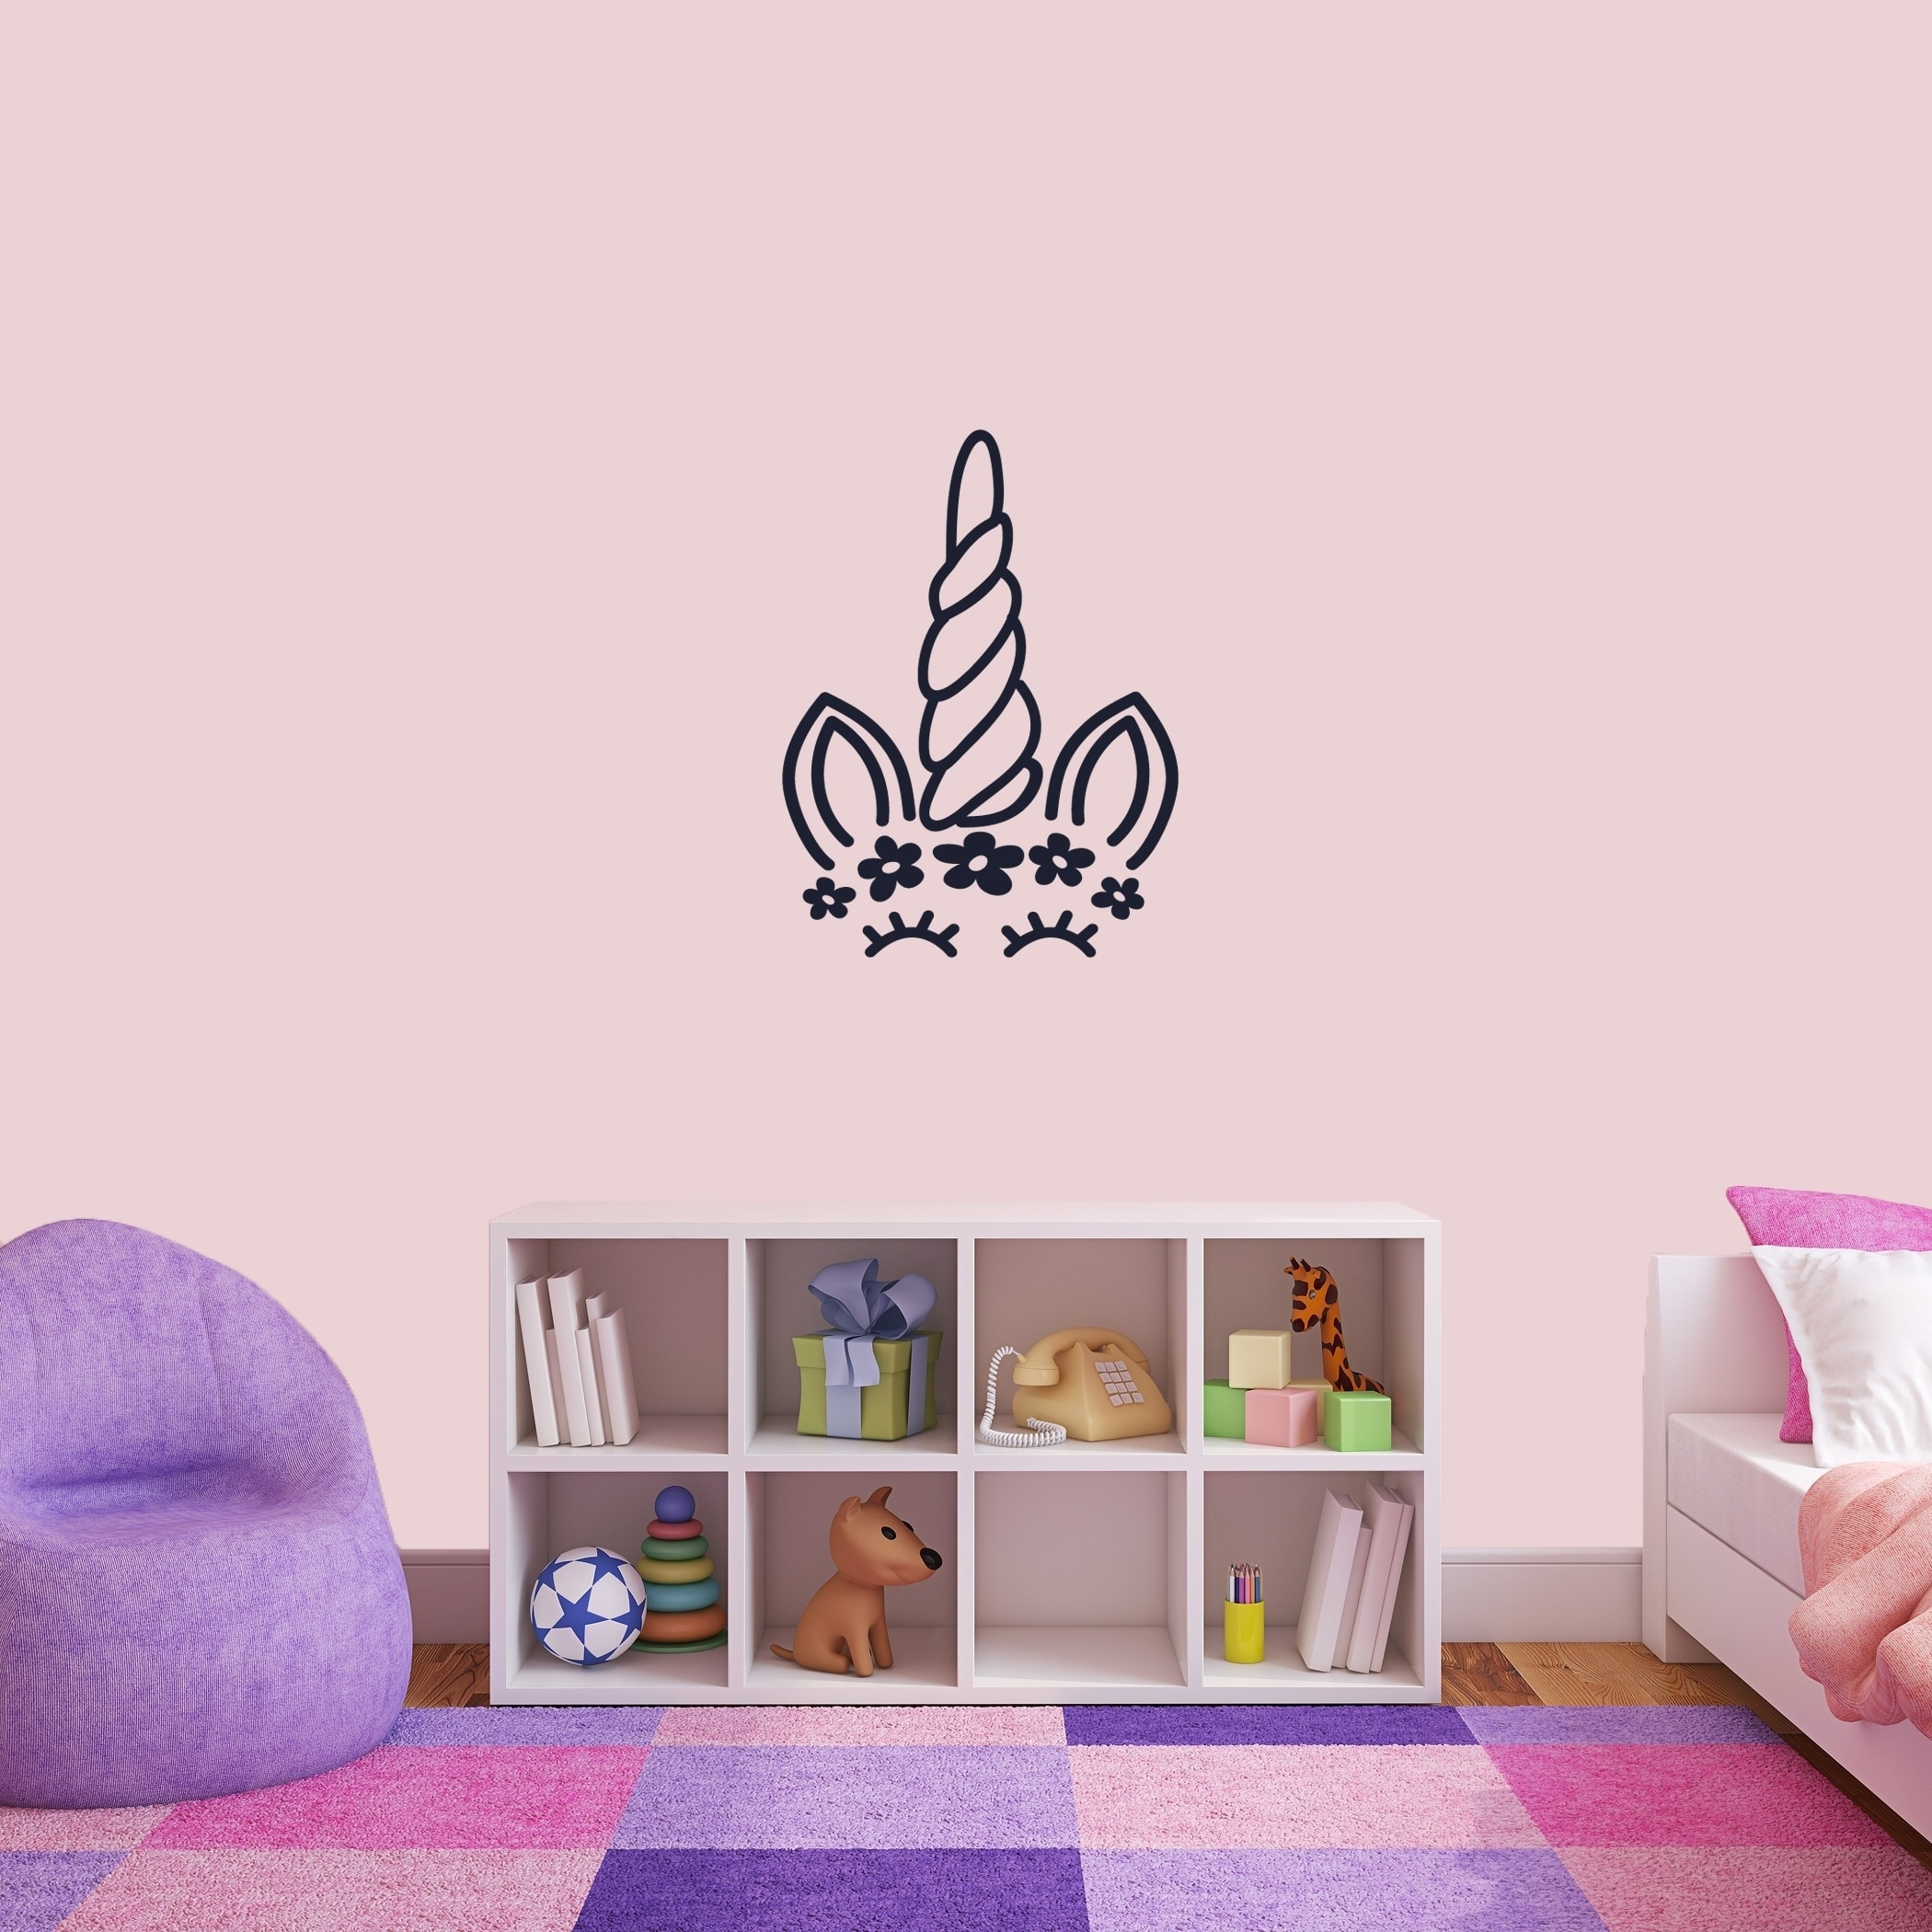 Unicorn Face Silhouette Wall Decal Overstock 25779794